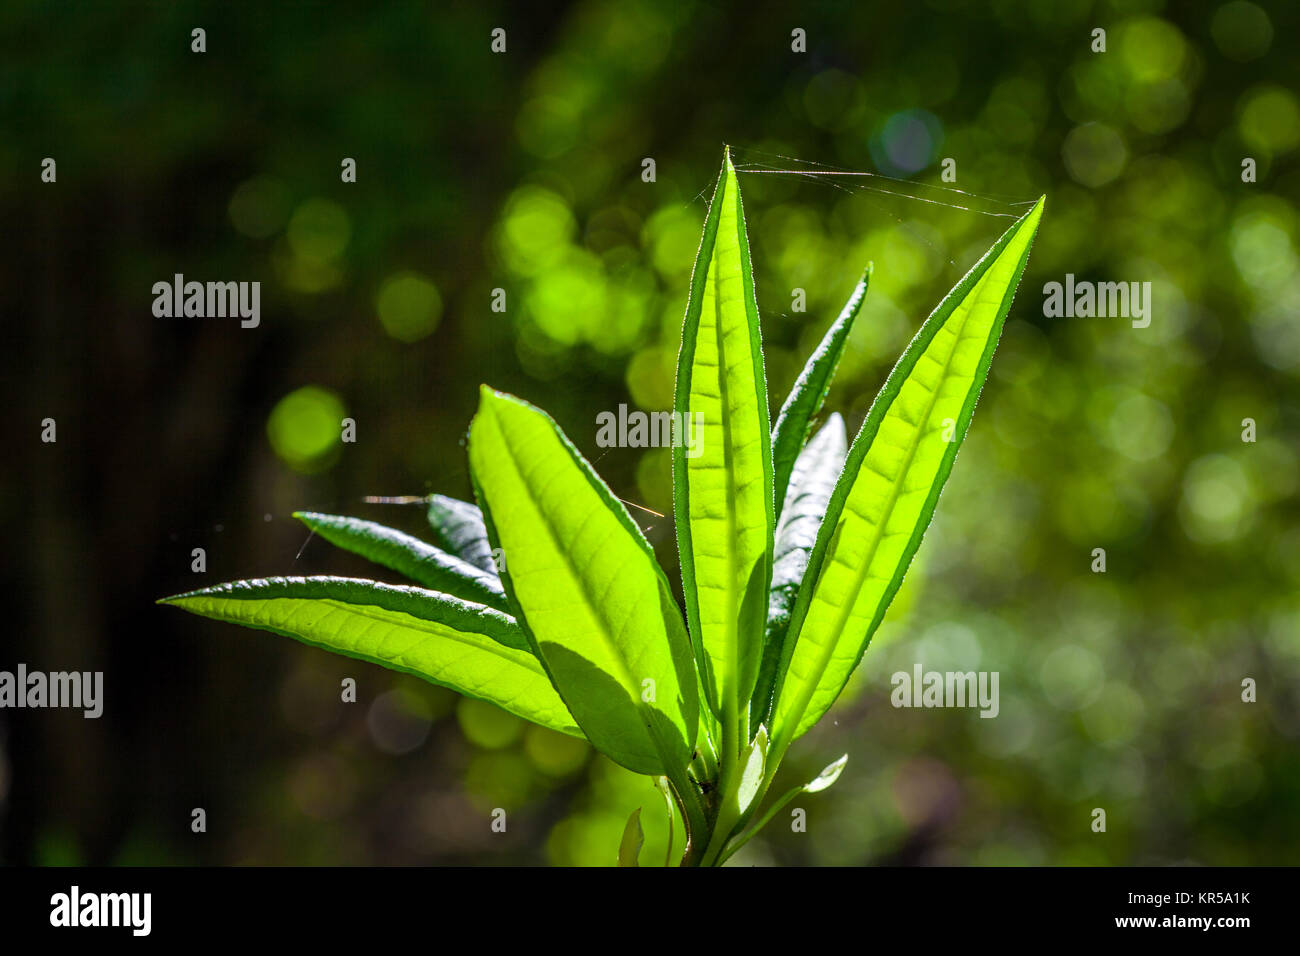 Vivid green rhododendron leaves in bright sunlight on blurred background - Stock Image